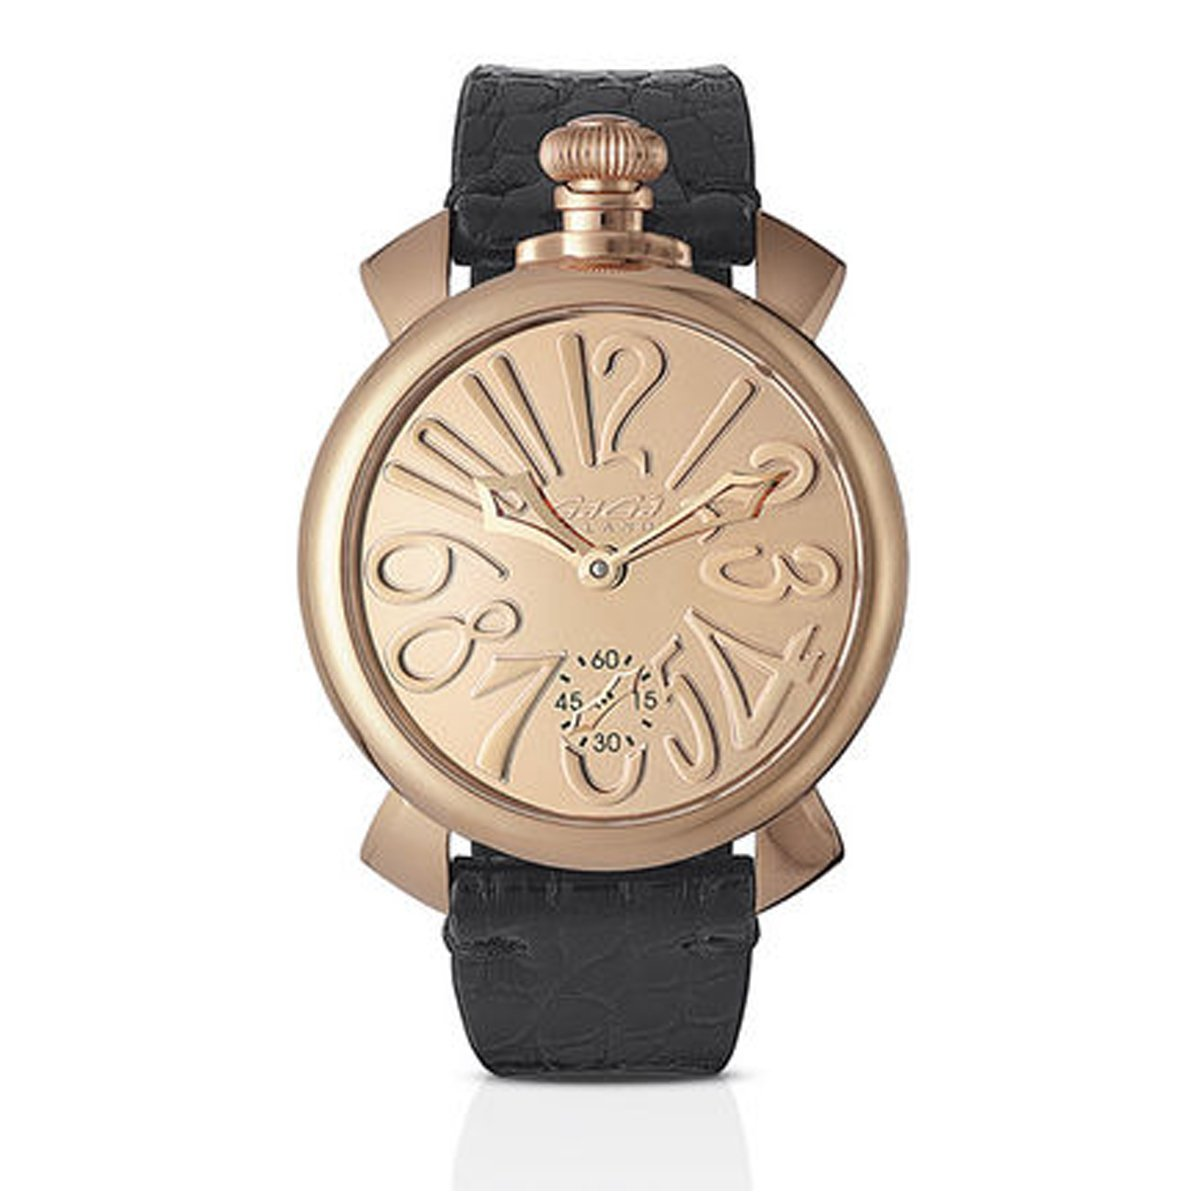 GaGà Milano Manuale 48 Mirror Rose Gold - Watches & Crystals